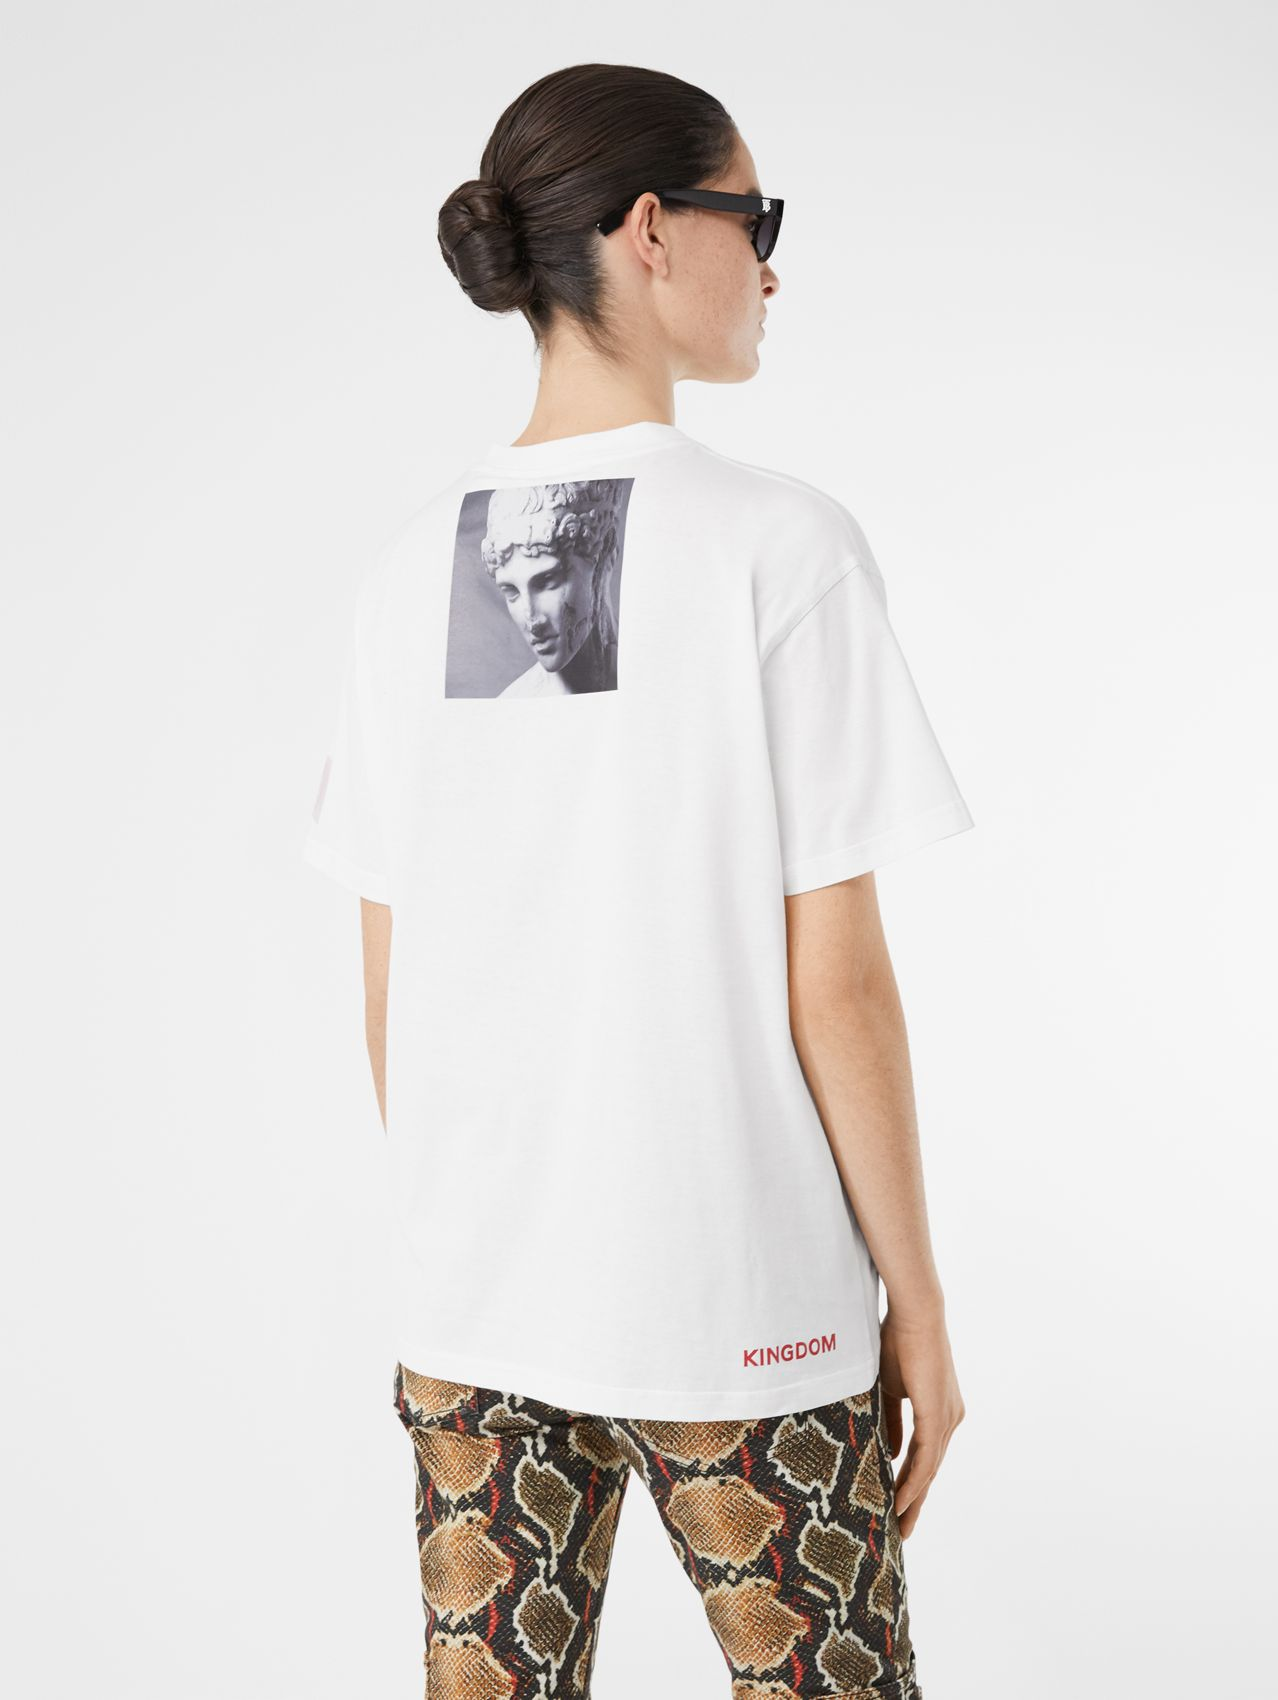 T-shirt oversize in cotone con stampa in stile collage (Bianco)